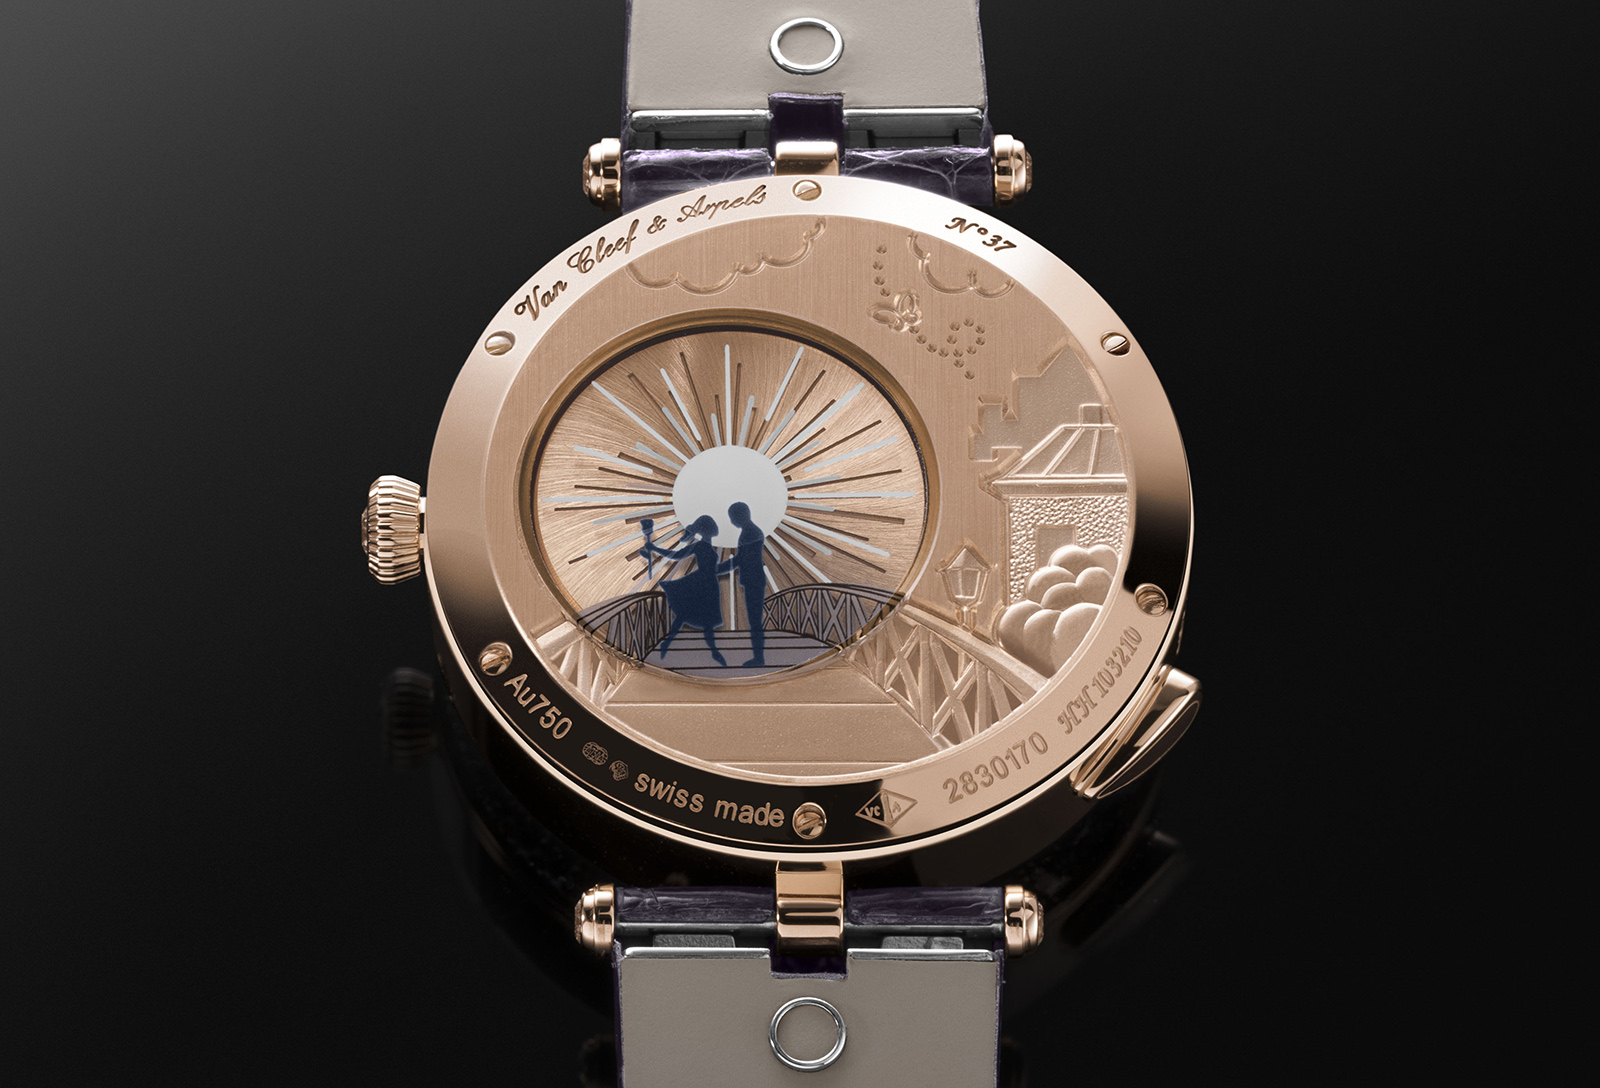 The micro-rotor on the back sits under the sapphire crystal with an enamel tracing image of the lovers meeting on a bridge. The case back is also engraved with an image of the scene on the case. Image by Toh Si Jia / Revolution.